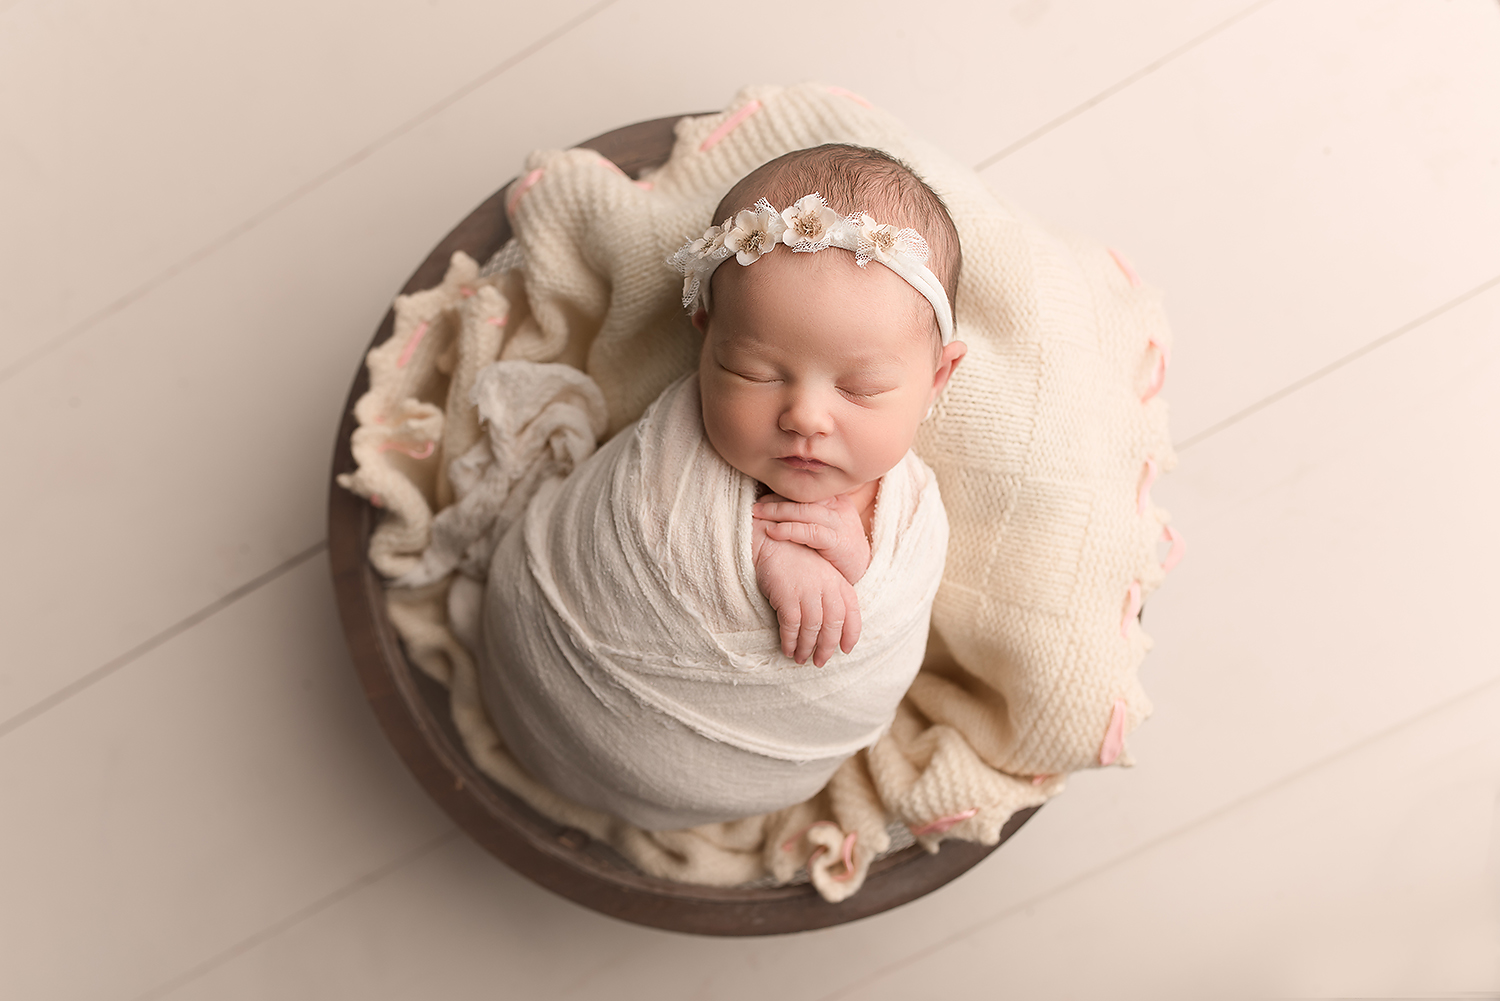 Baltimore Howard County Maryland Newborn Photographer Jessica Fenfert baby girl cream bowl